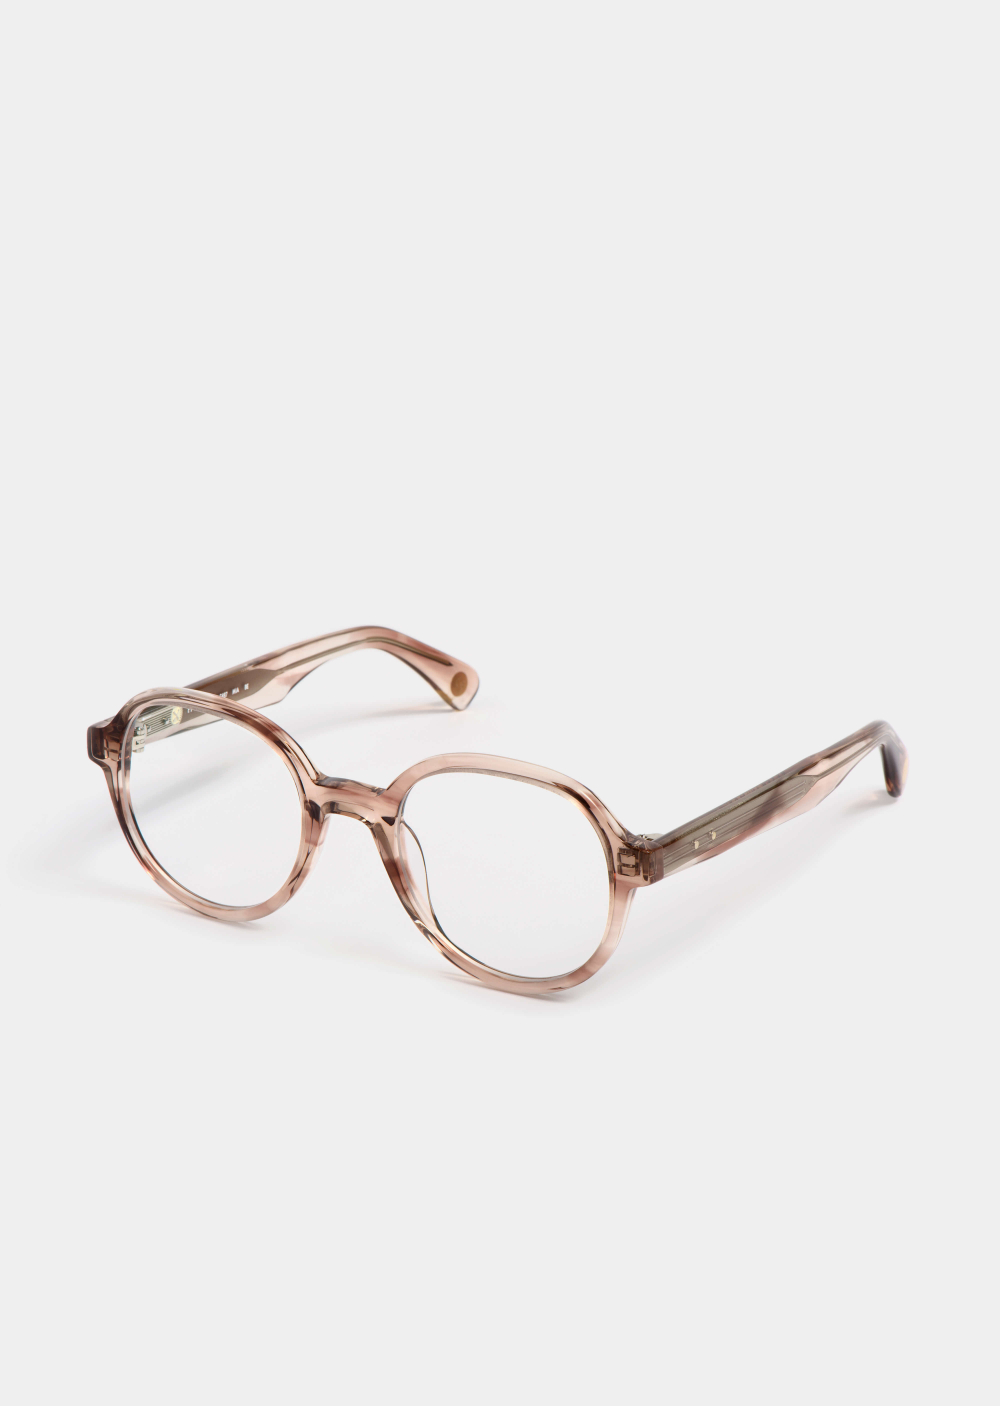 PETER AND MAY -  - S87 Mia beige